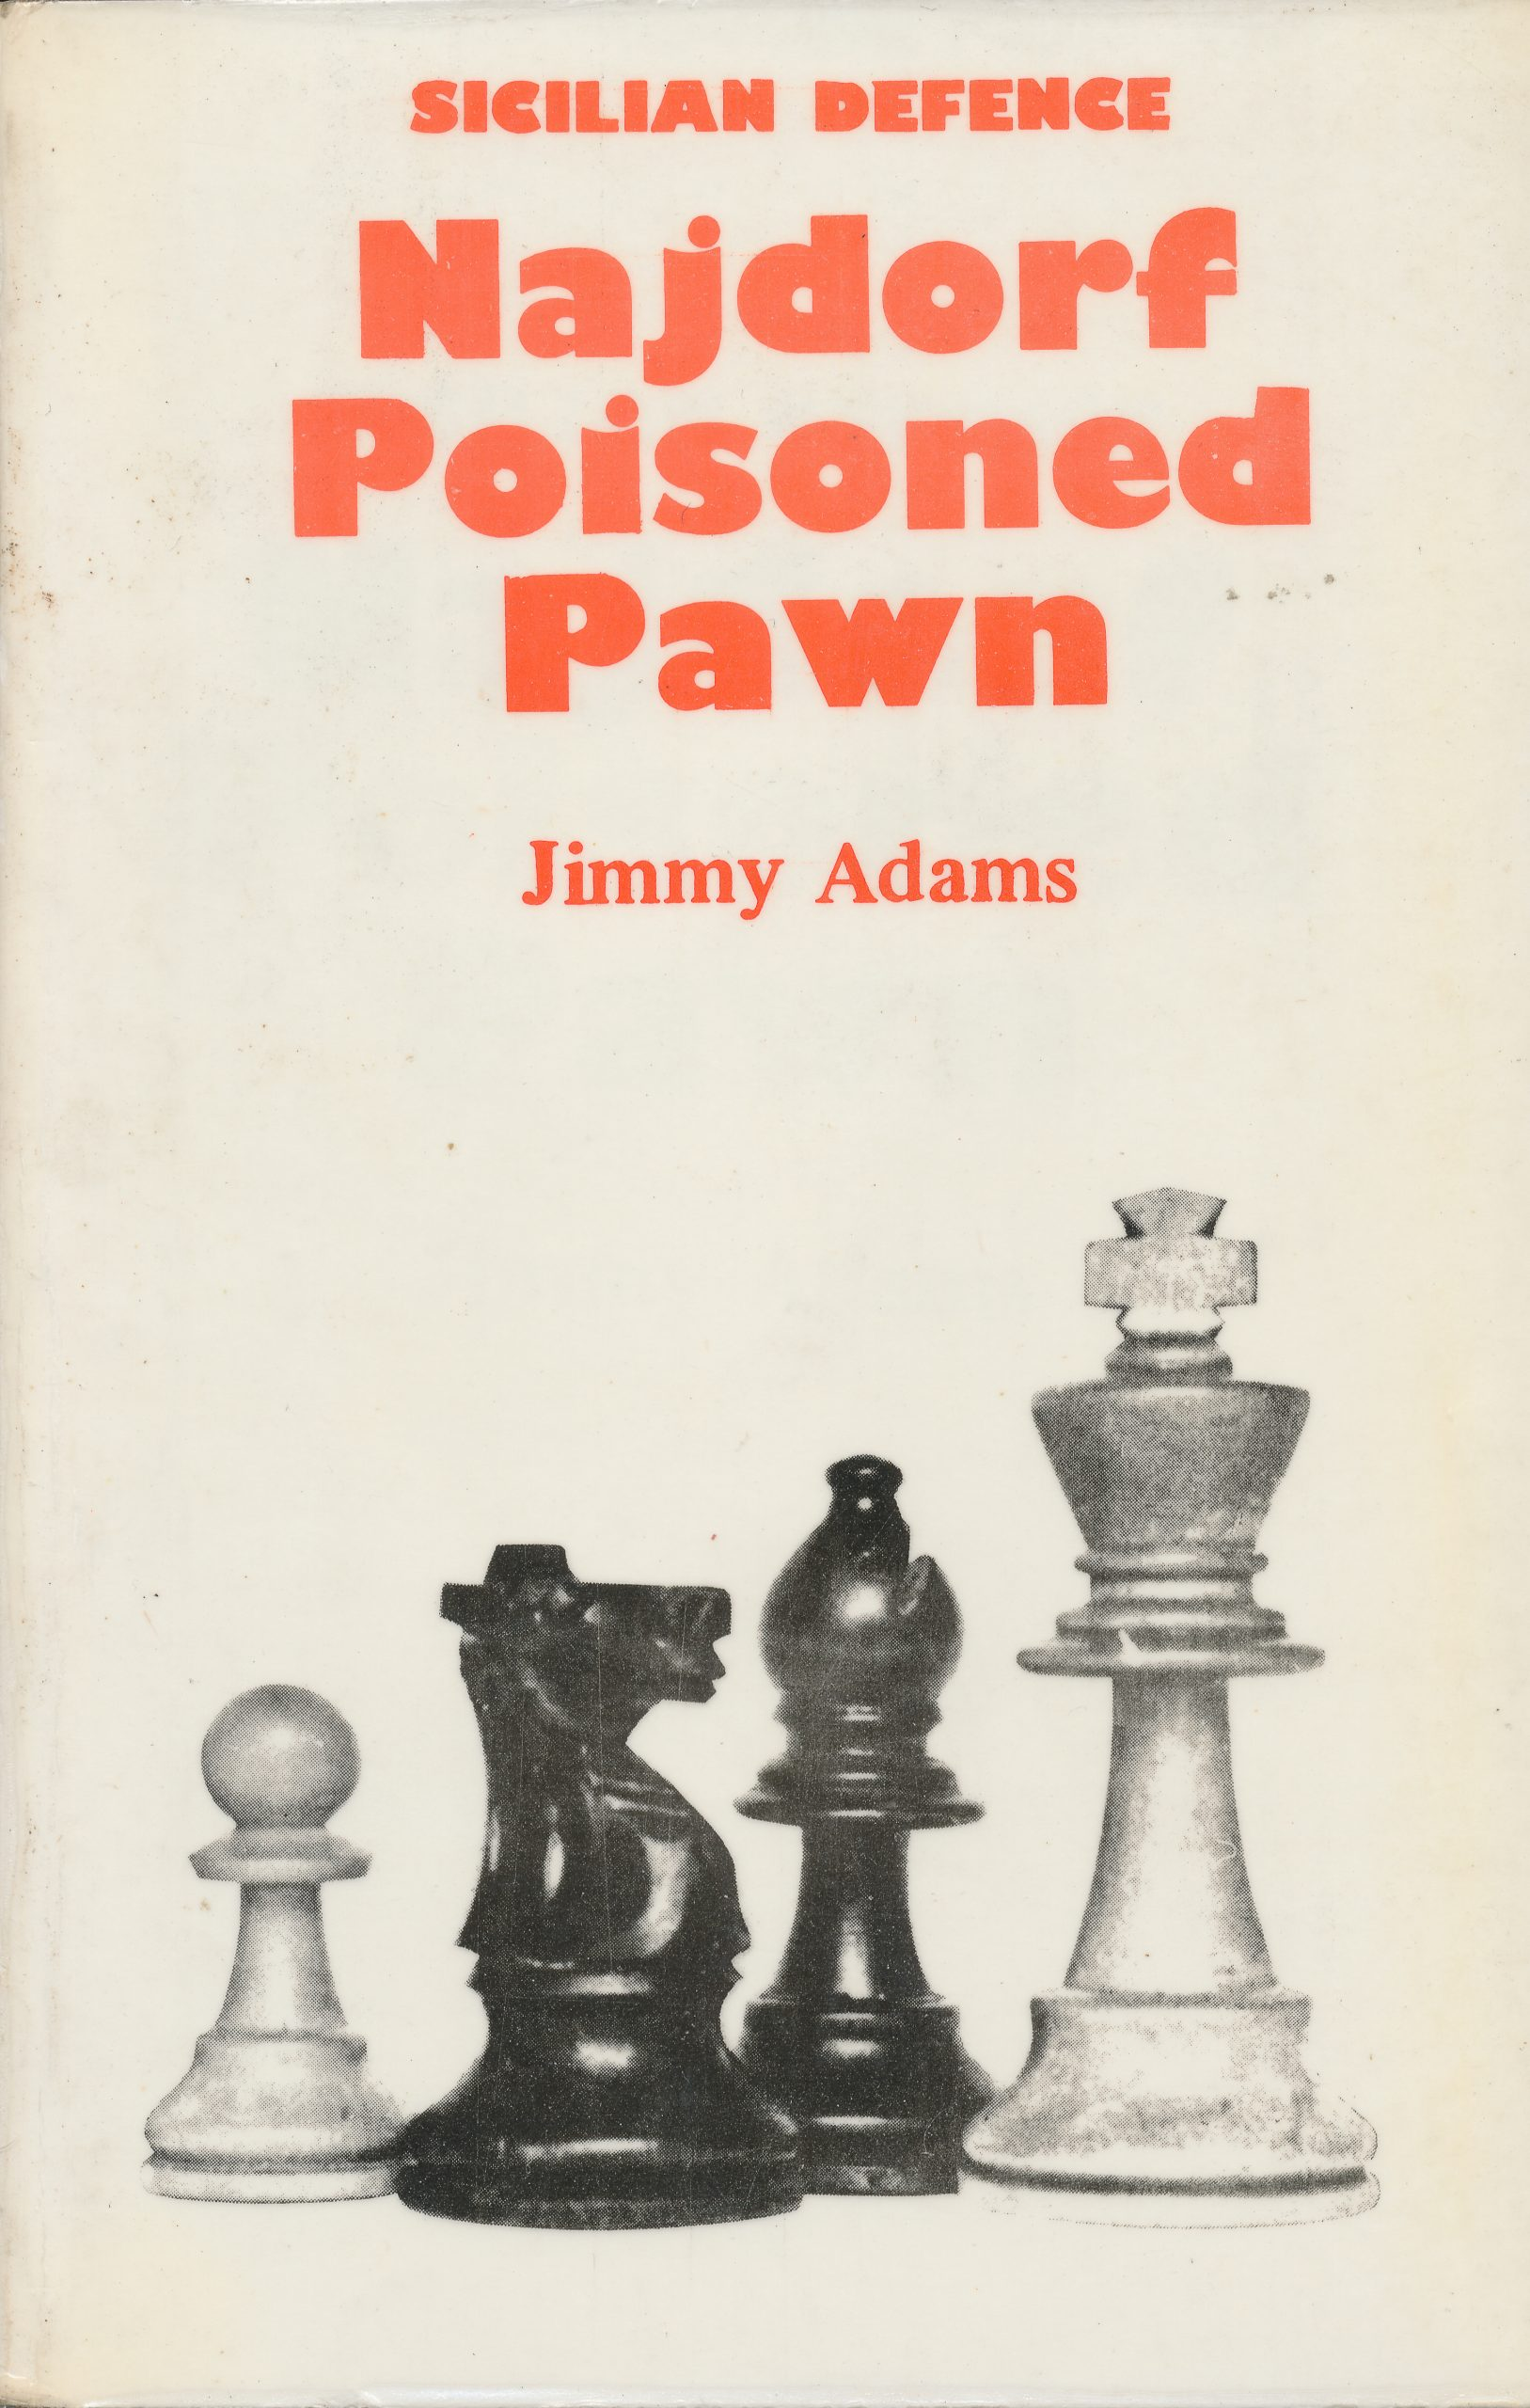 Sicilian Defence Najdorf Poisoned Pawn, Jimmy Adams, The Chess Player, 1977